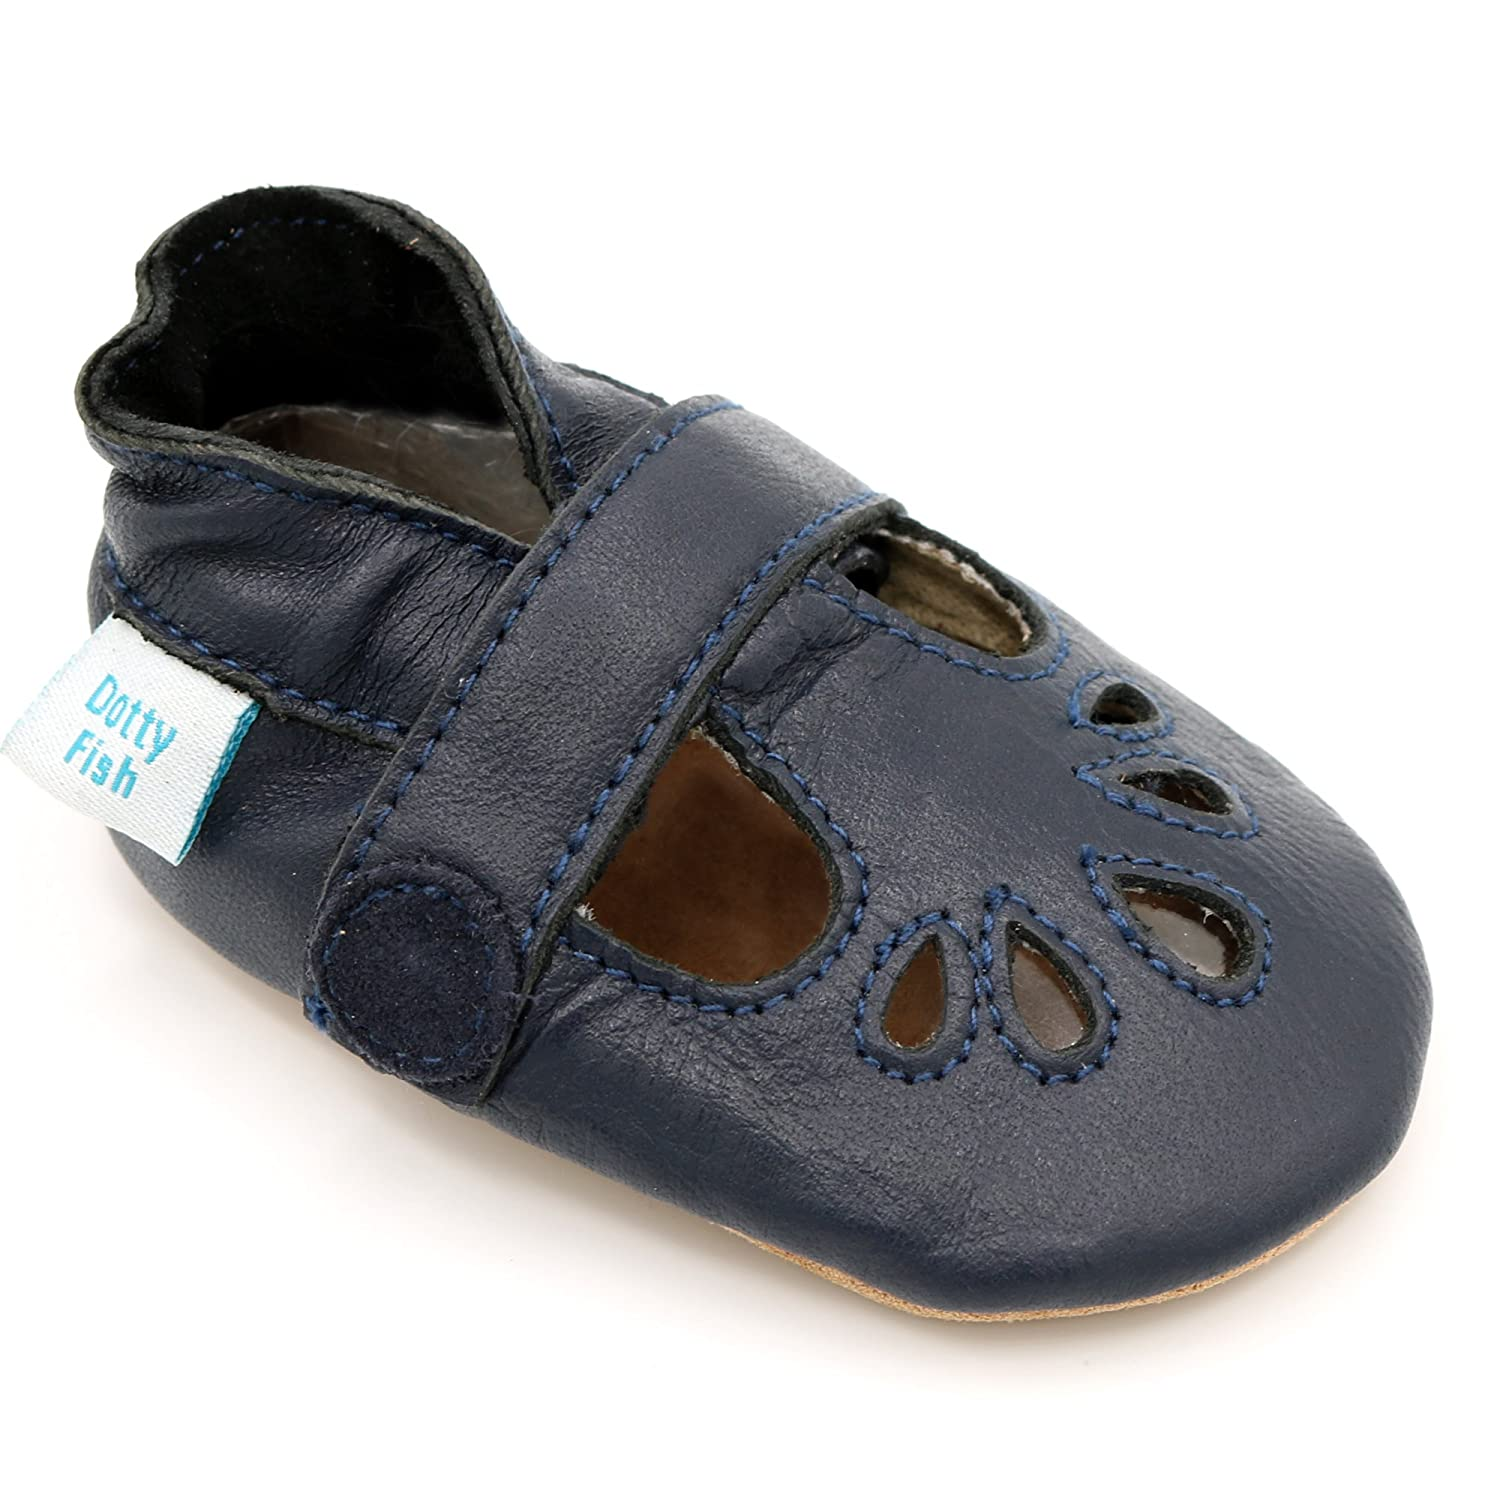 380b22f647853 Dotty Fish Soft Leather Baby Shoes. Toddler Shoes. Non Slip Suede Sole.  Classic Red